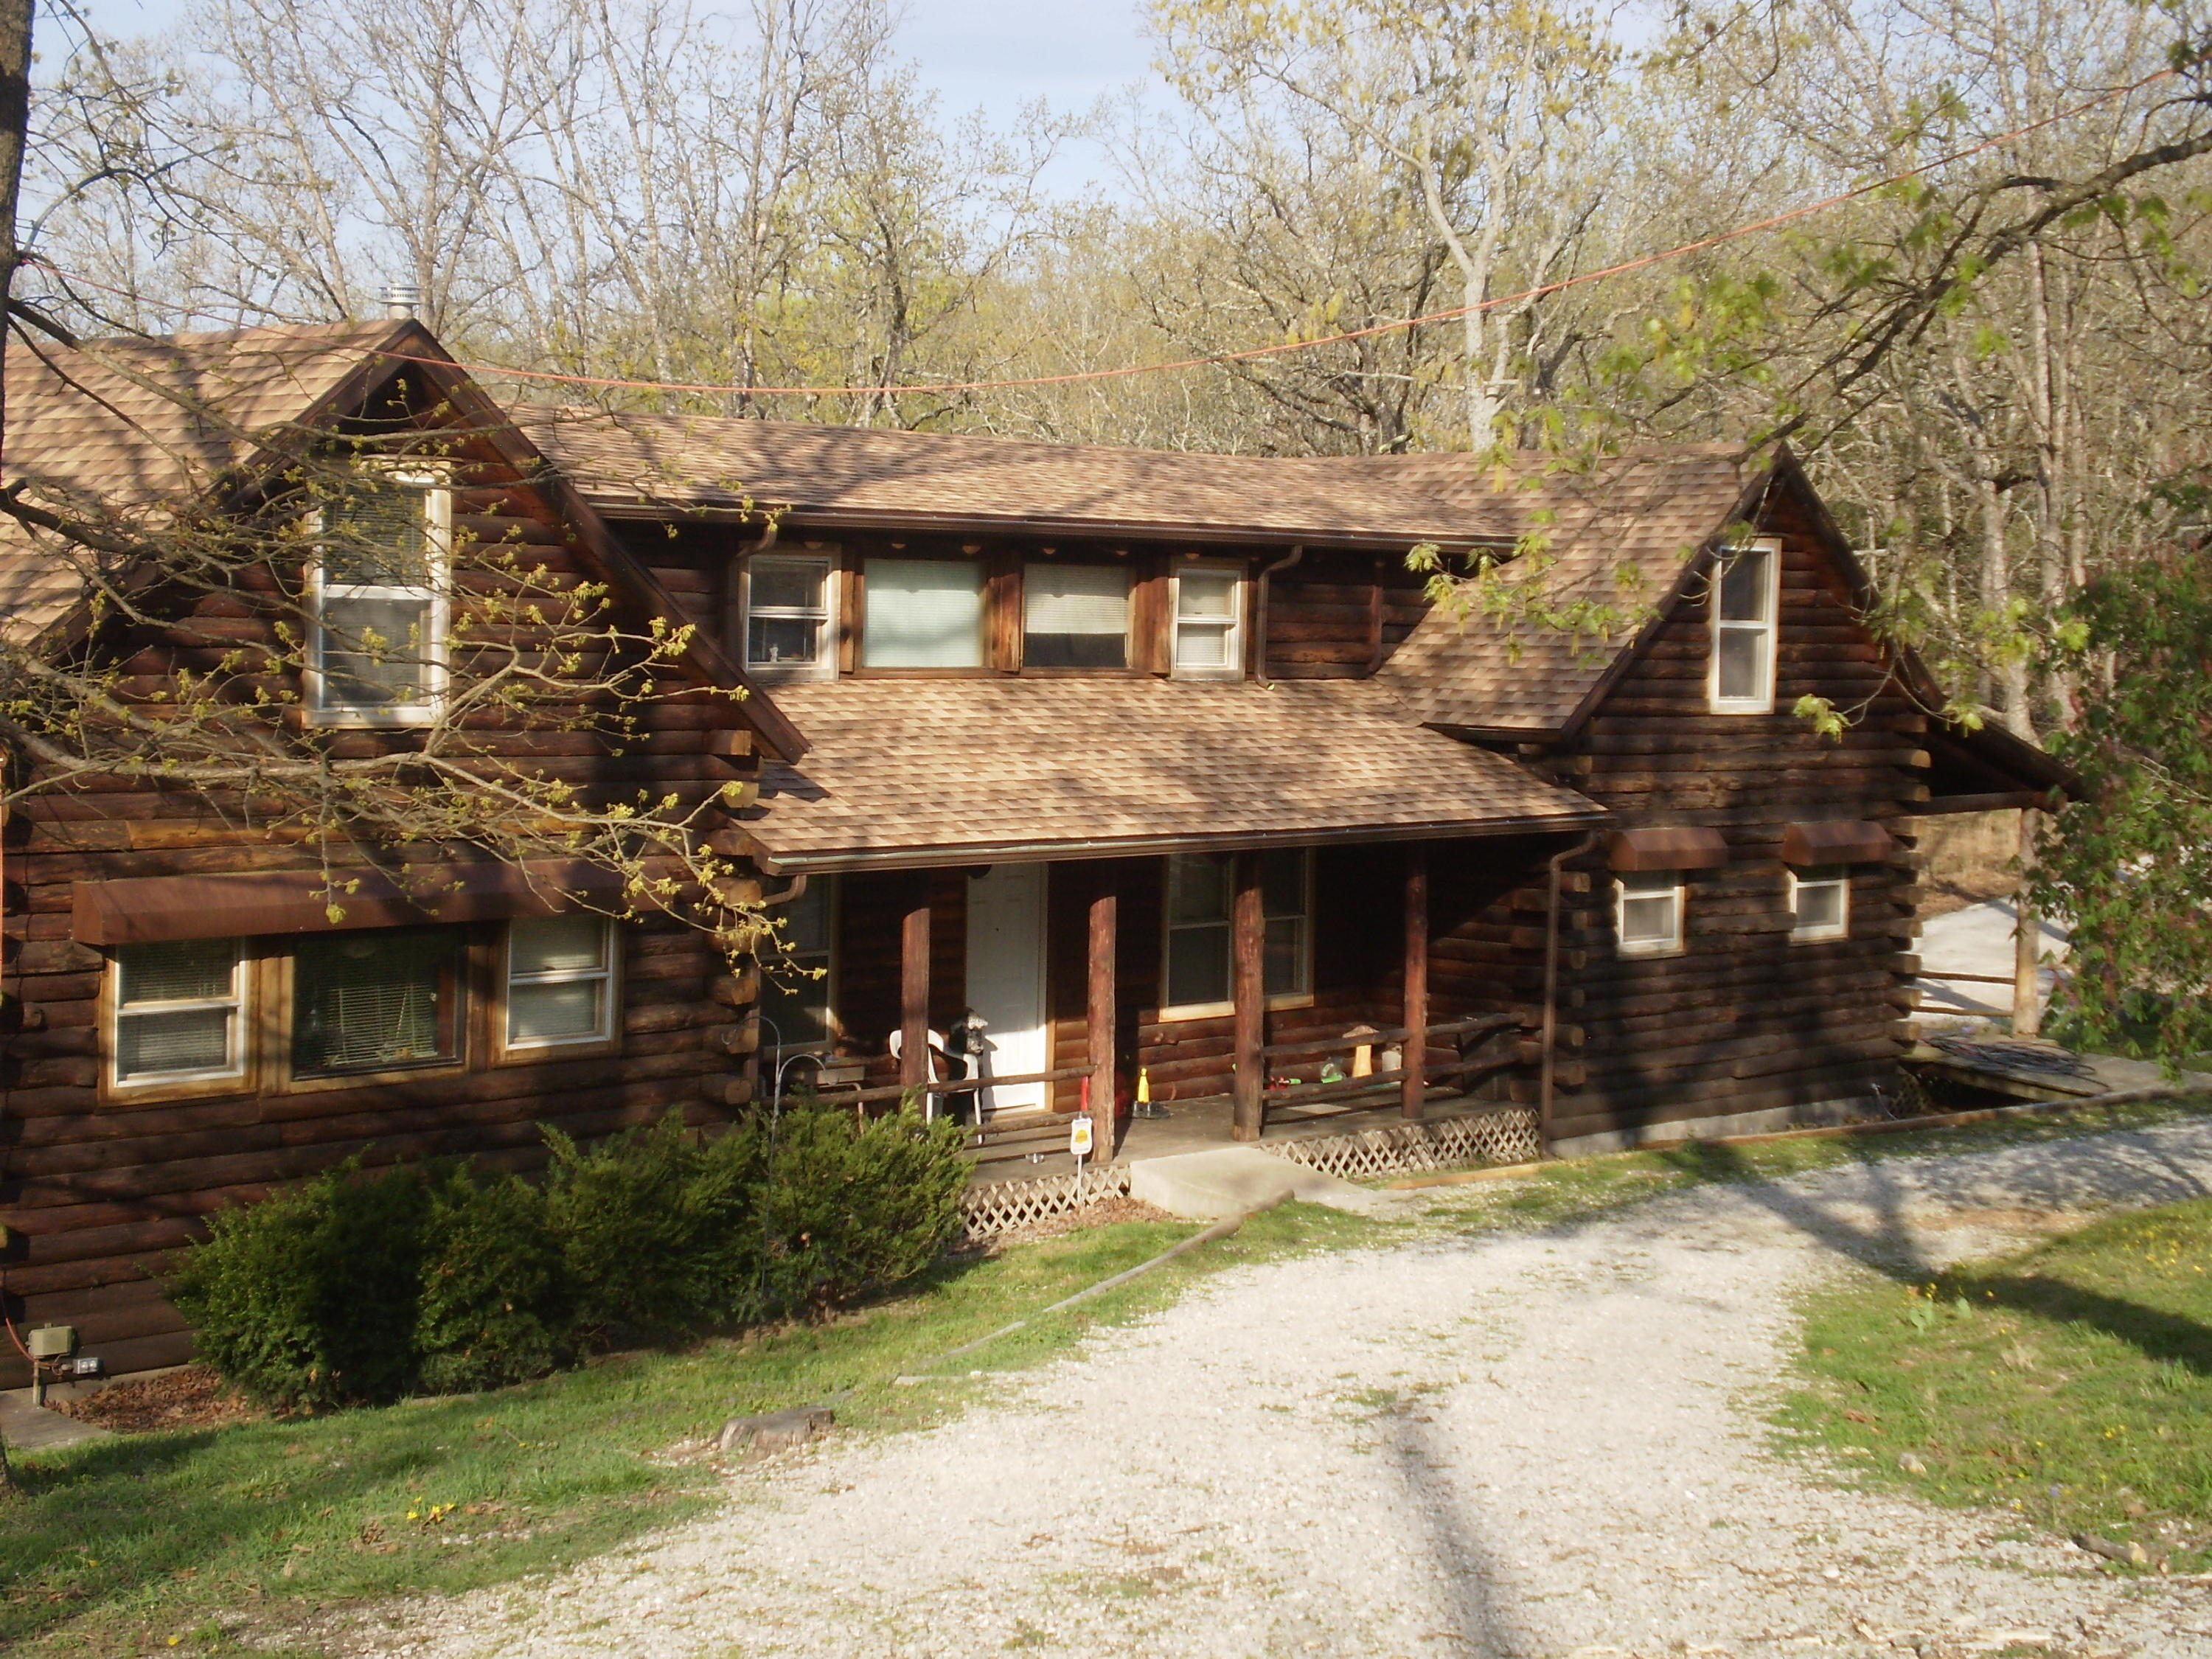 184 Collier Rd Road Kissee Mills, MO 65680